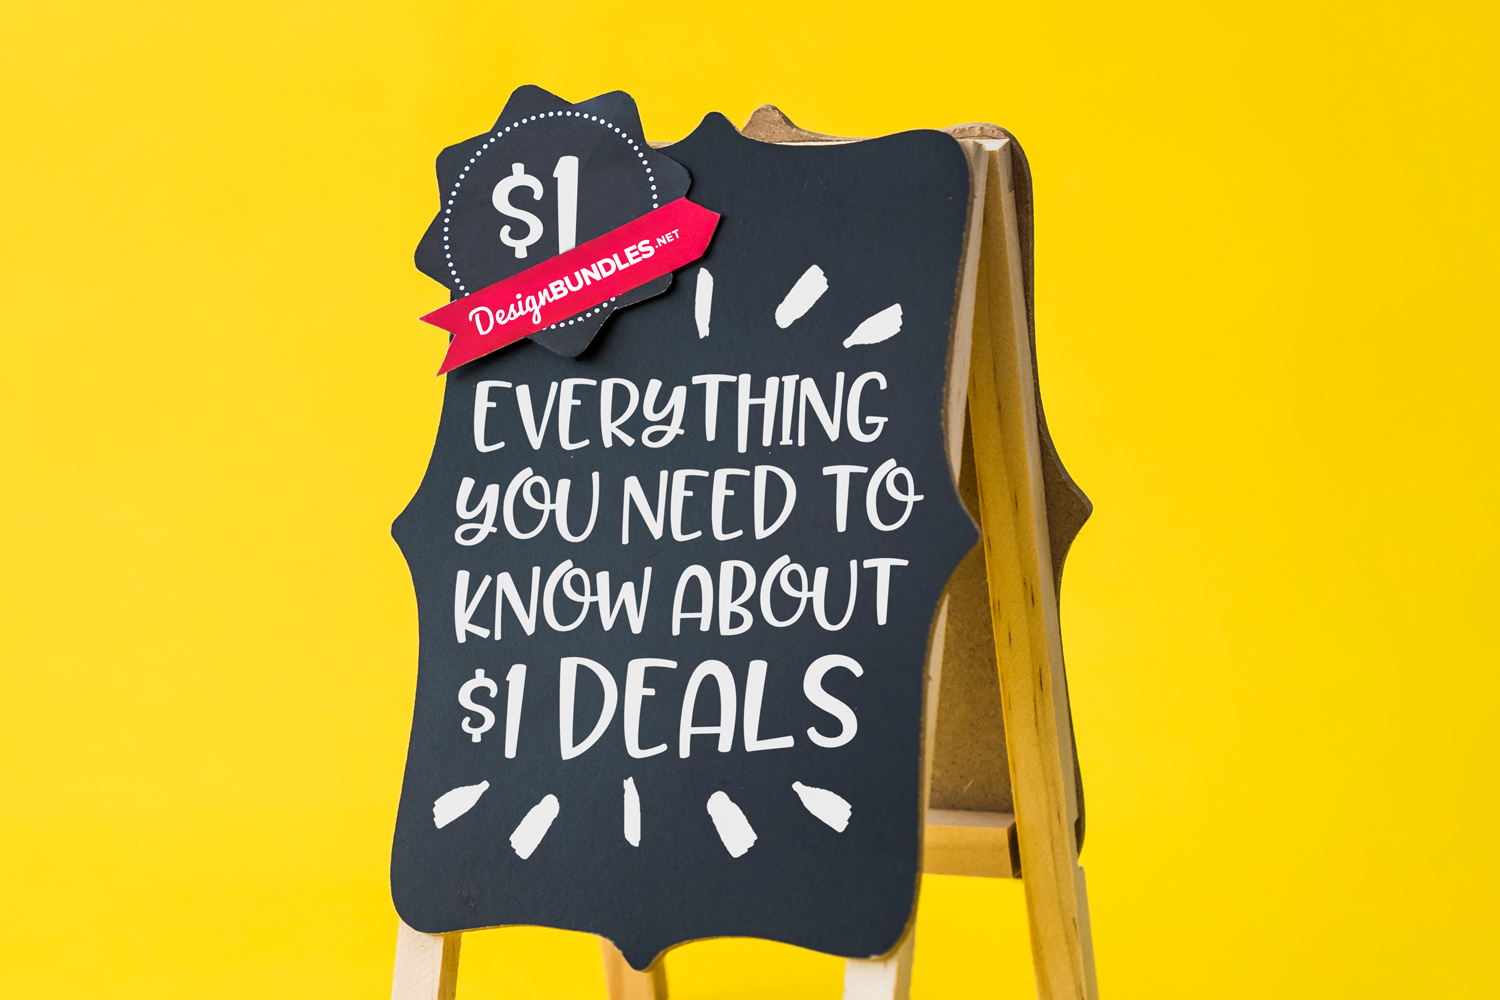 Everything you need to know about $1 deals